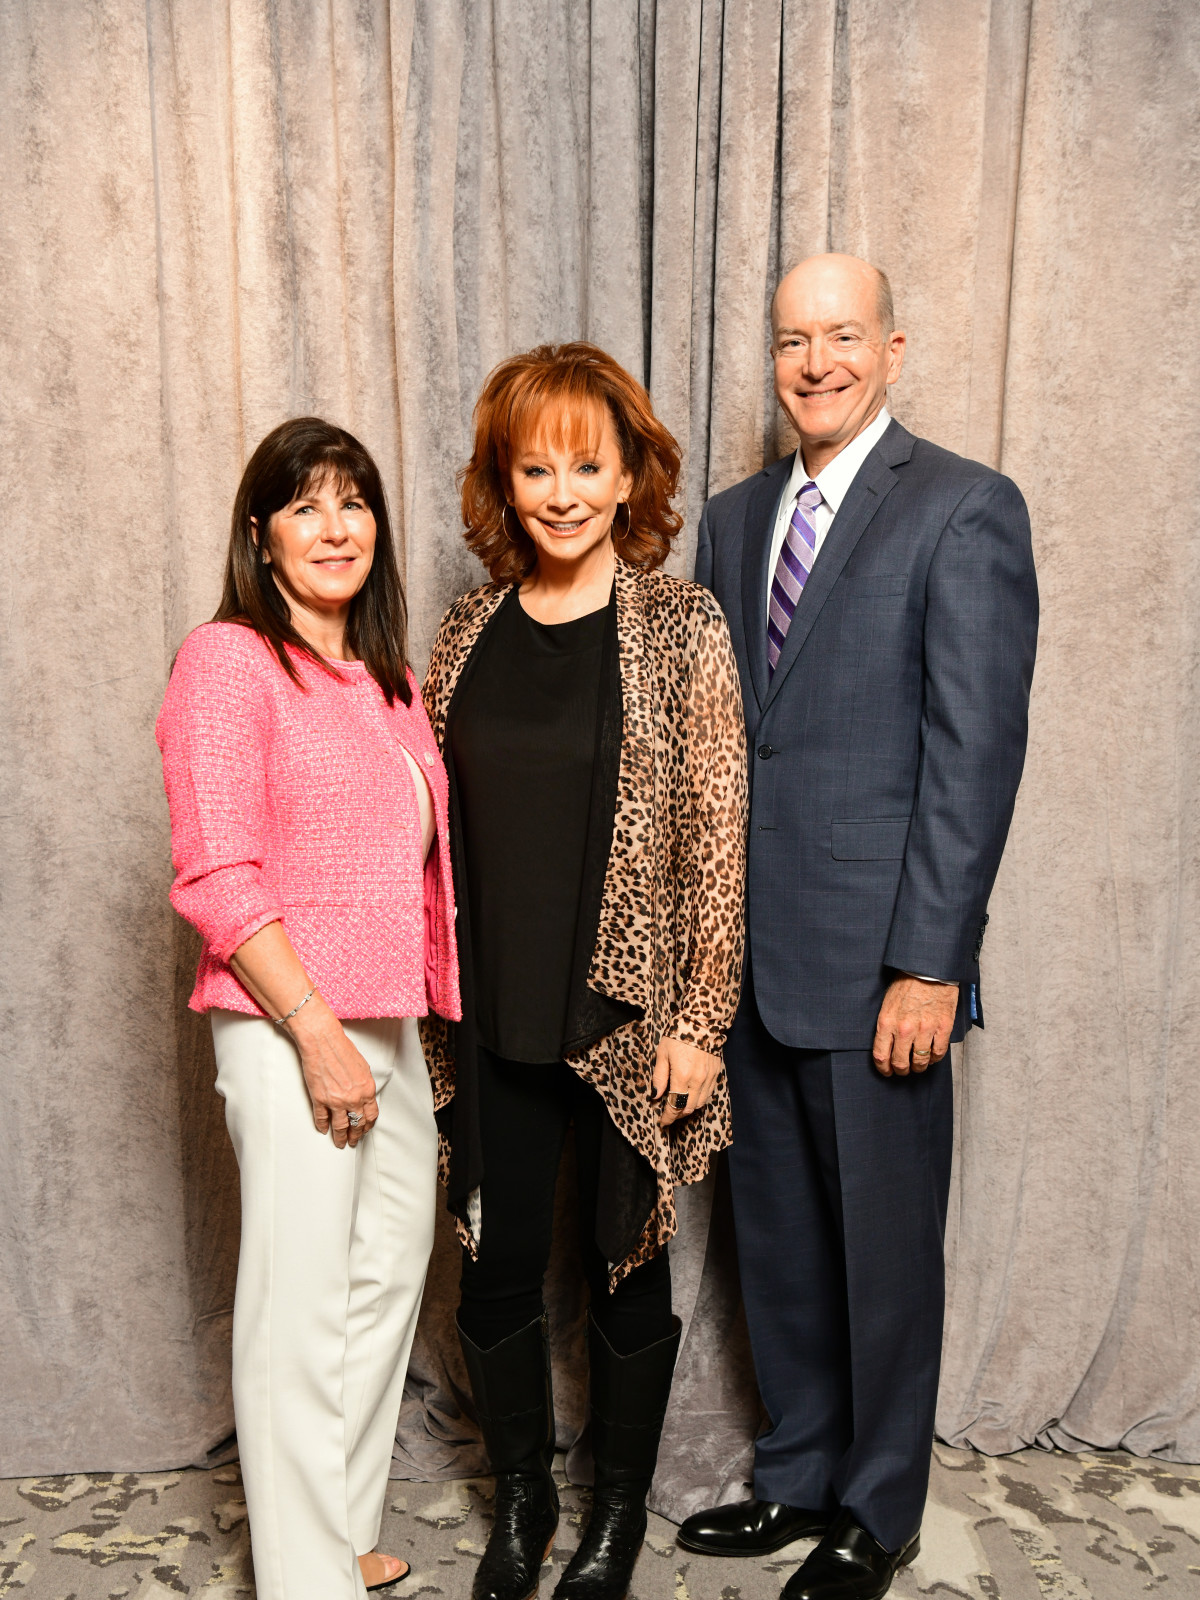 Razzle Dazzle Luncheon 2019 Tonya Callender, Reba McEntire, Dr. David Callender, president and CEO of Memorial Hermann Health System